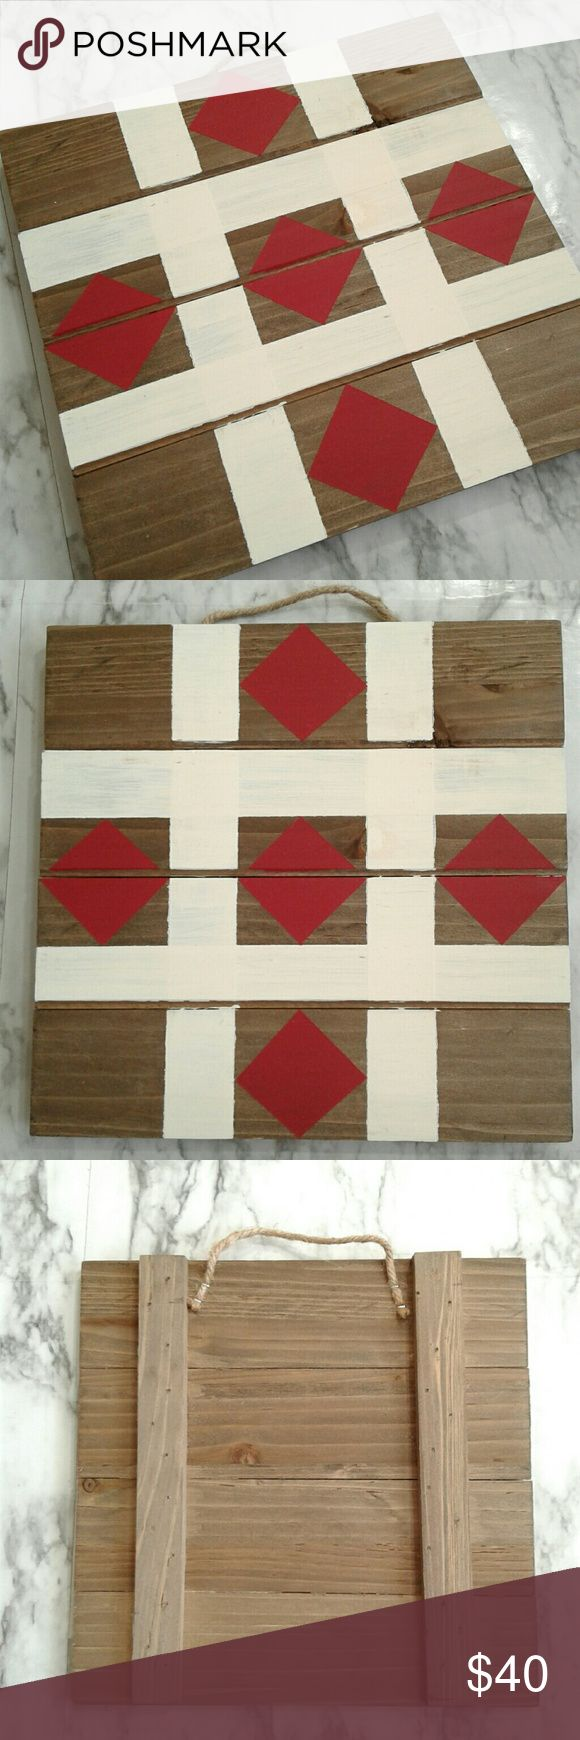 Hand-painted Rustic Chic Pallet Wood Barn Quilt Perfect for adding a touch of wa...